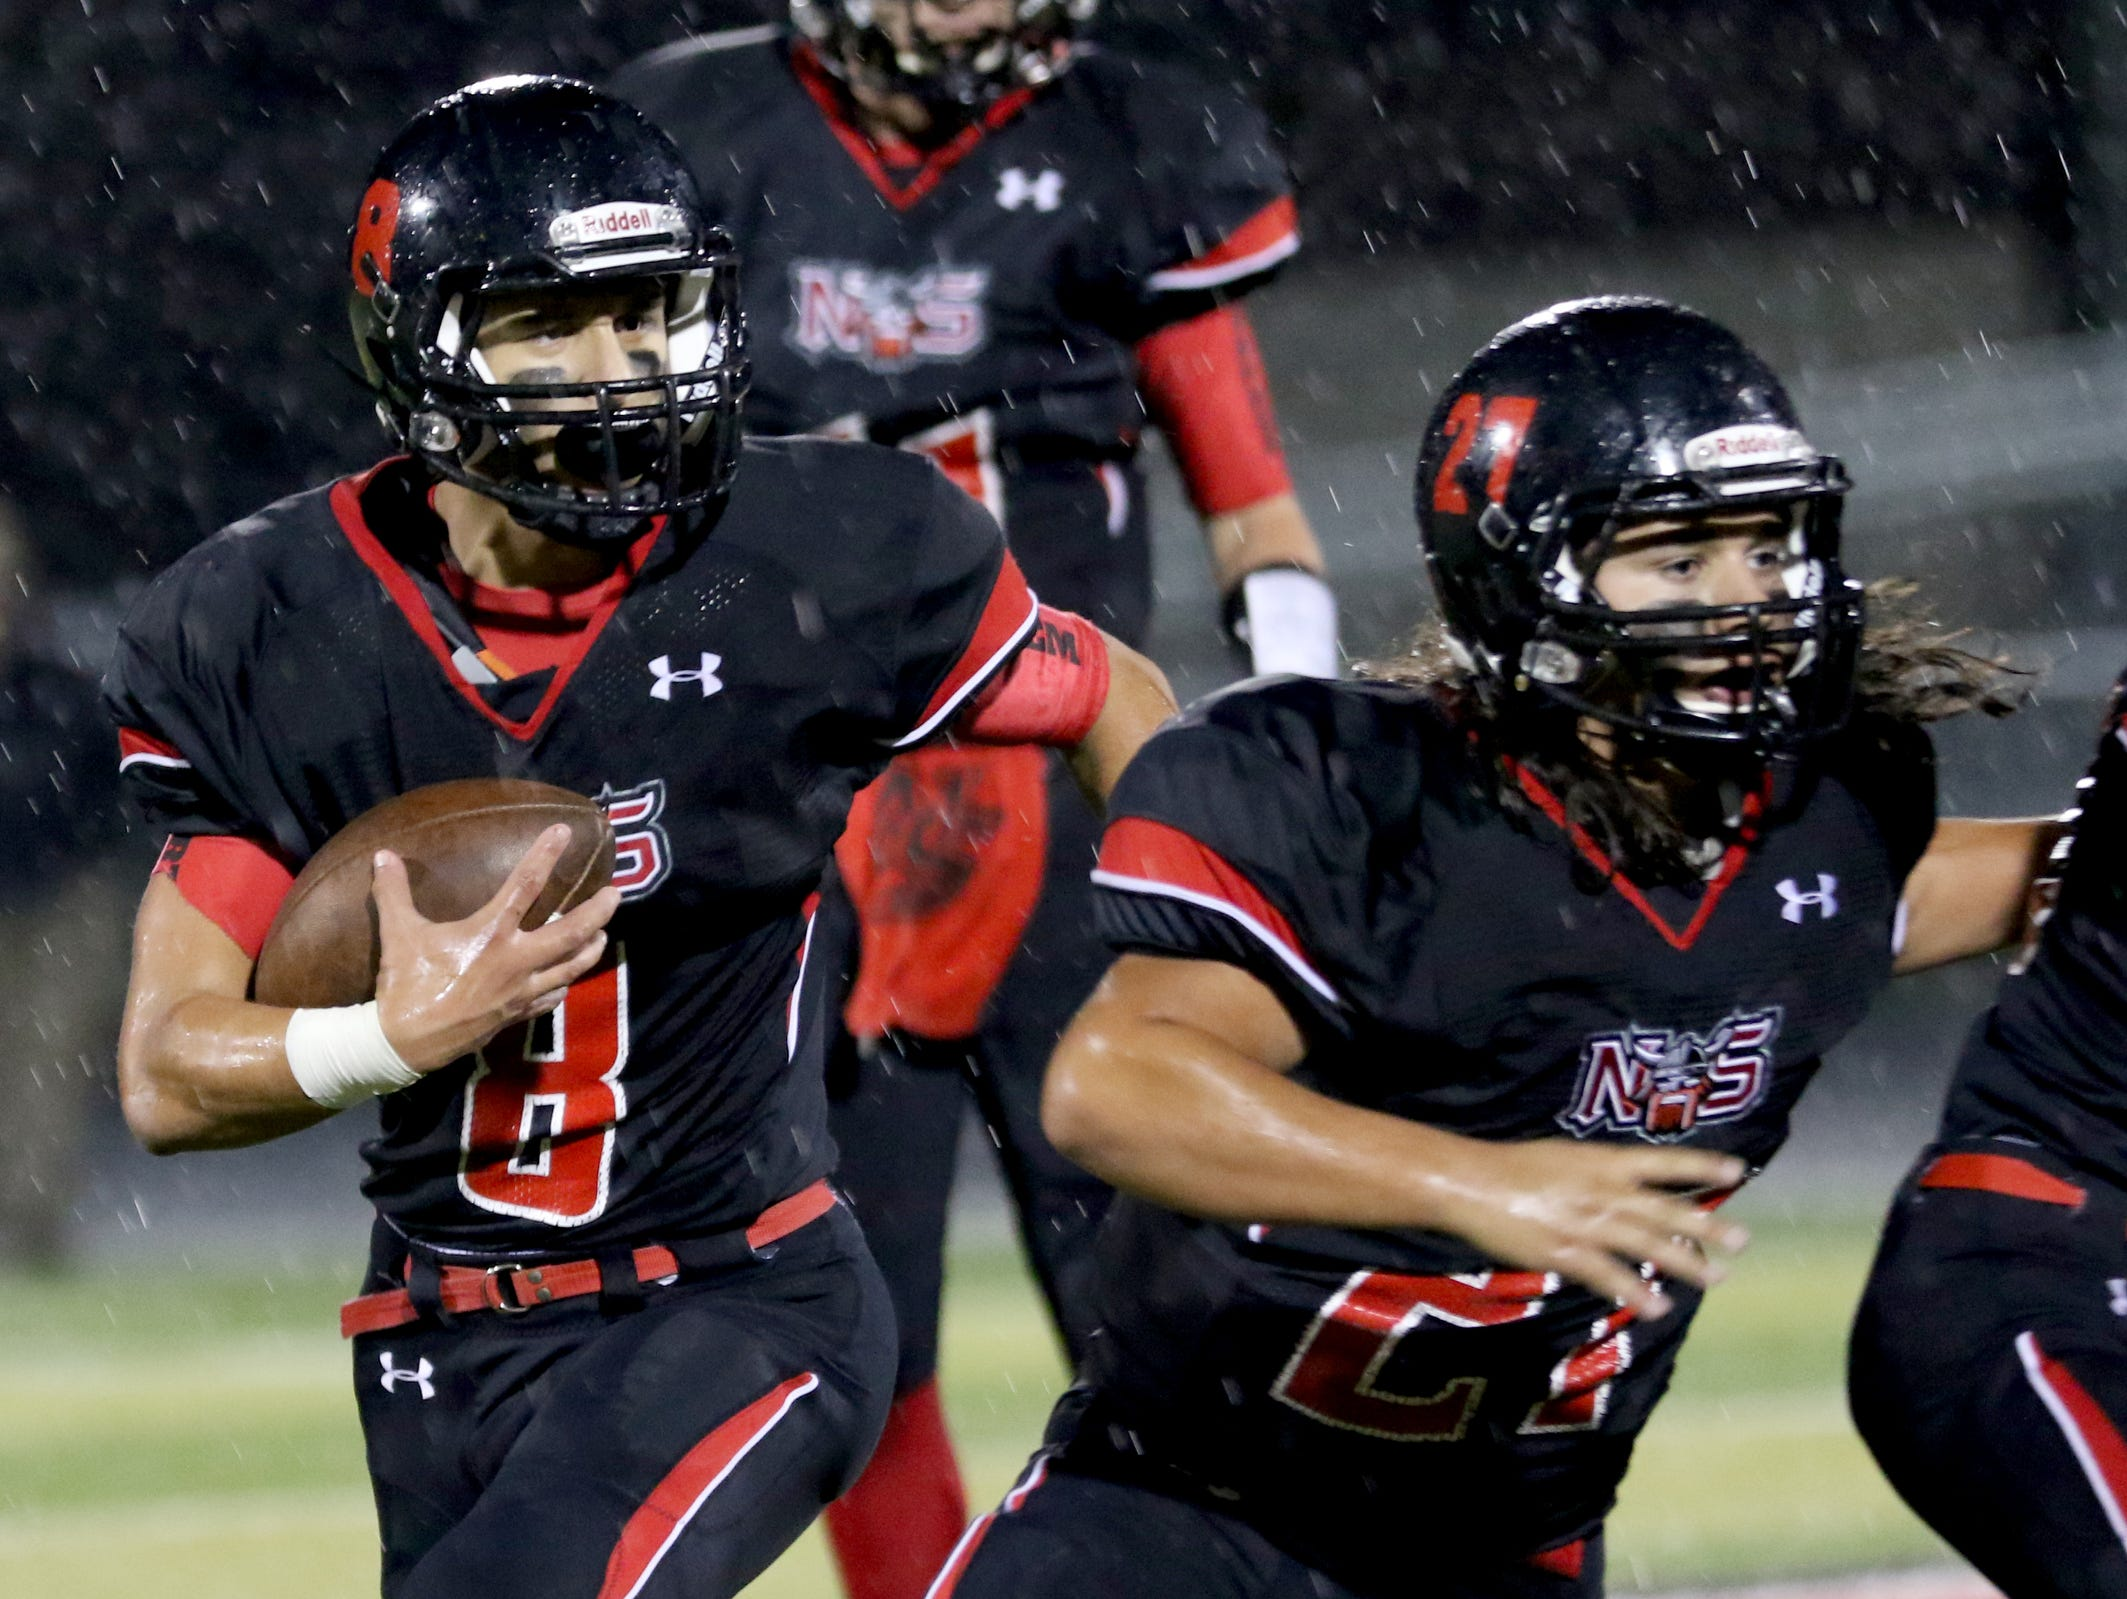 North Salem won the Mayor's Trophy football game against South Salem last season for the first time in nine years.